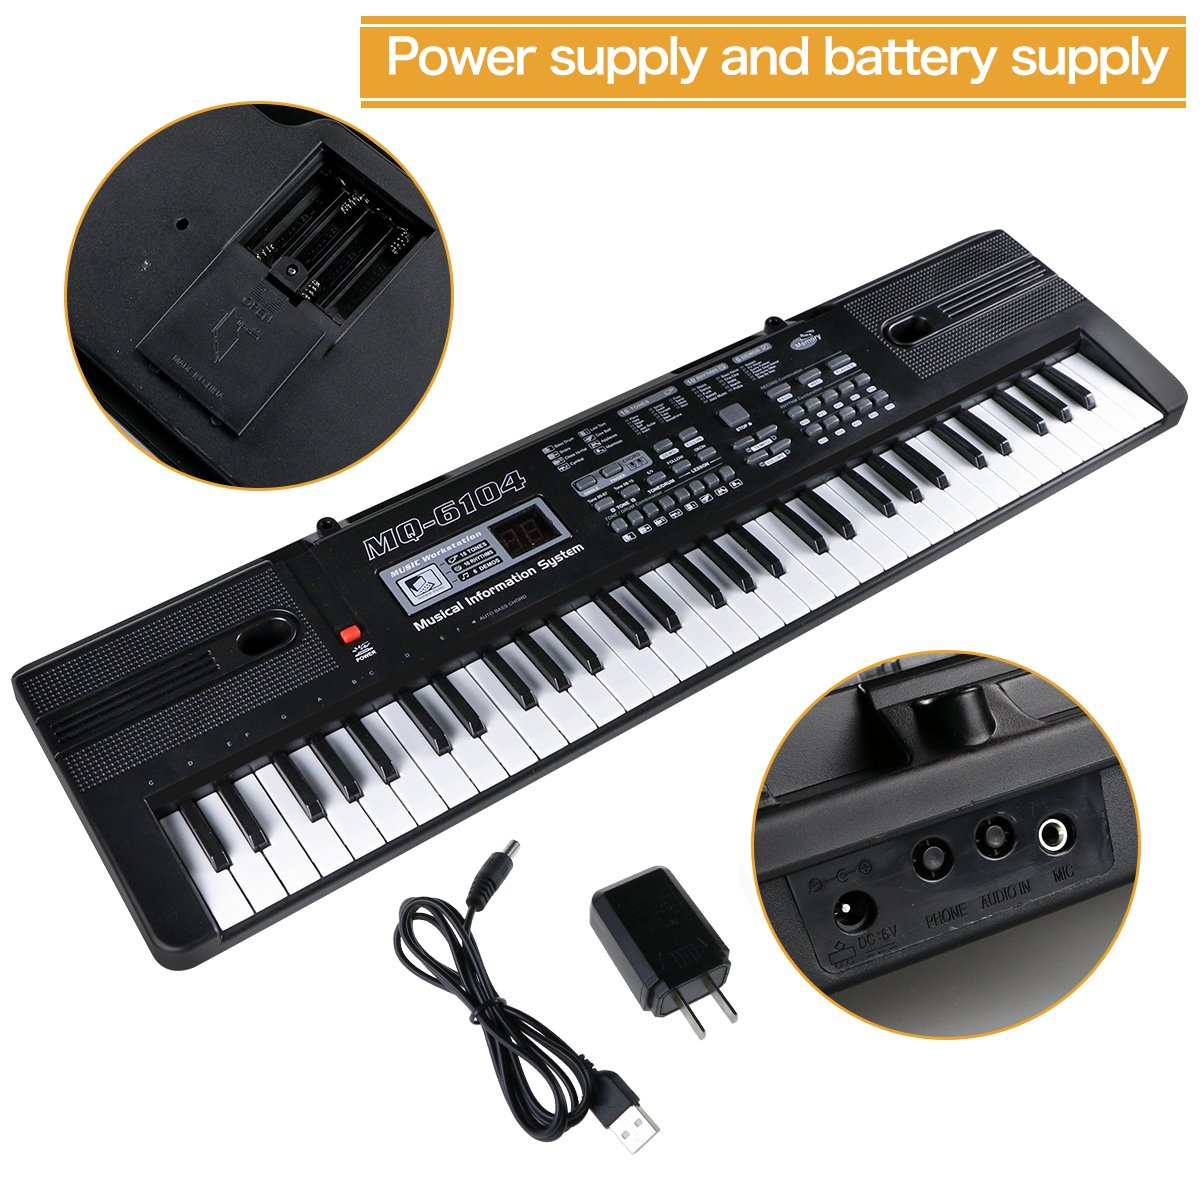 Portable Electronic Musical Instrument Multi-function Keyboard and Microphone for Kids Piano Music Teaching Toys Birthday Christmas Day Gifts for Kids Digital Music Piano Keyboard 61 Key